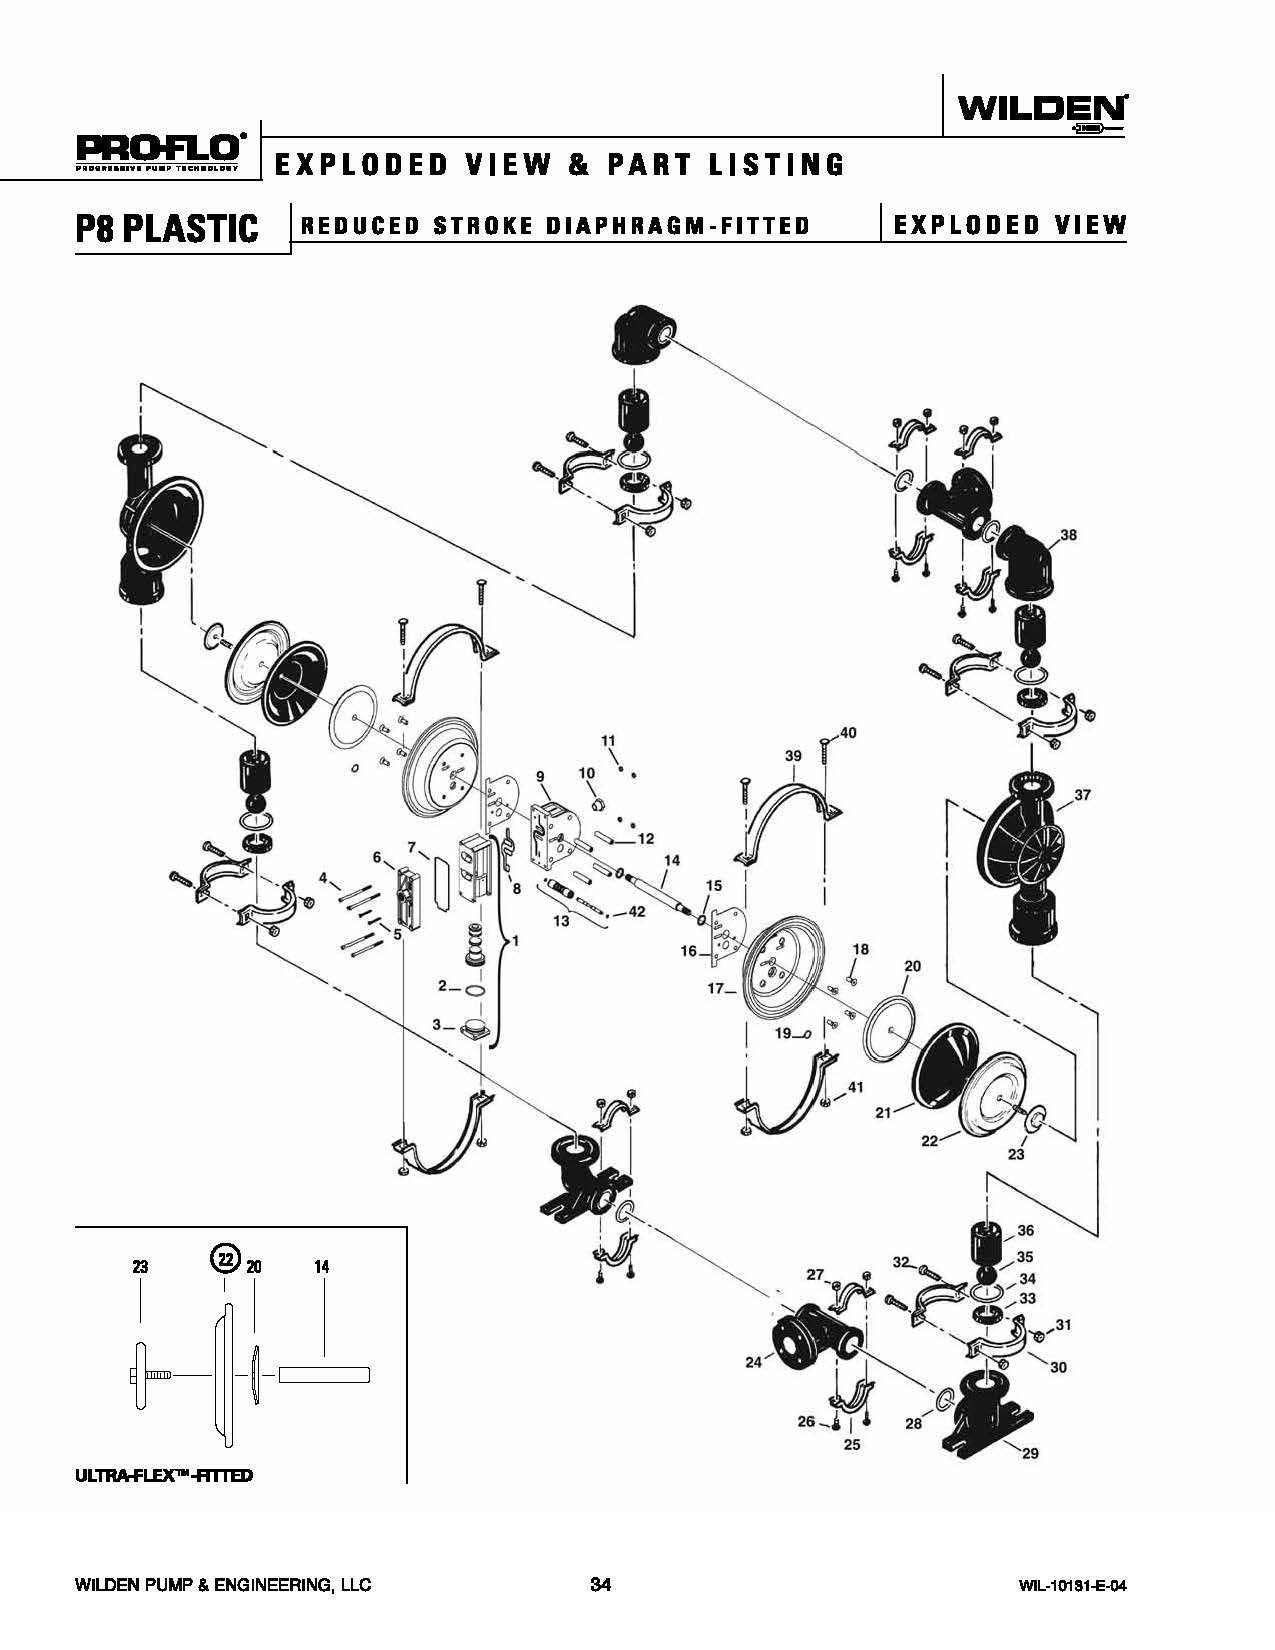 Gorman Rupp Centrifugal Pump Manual